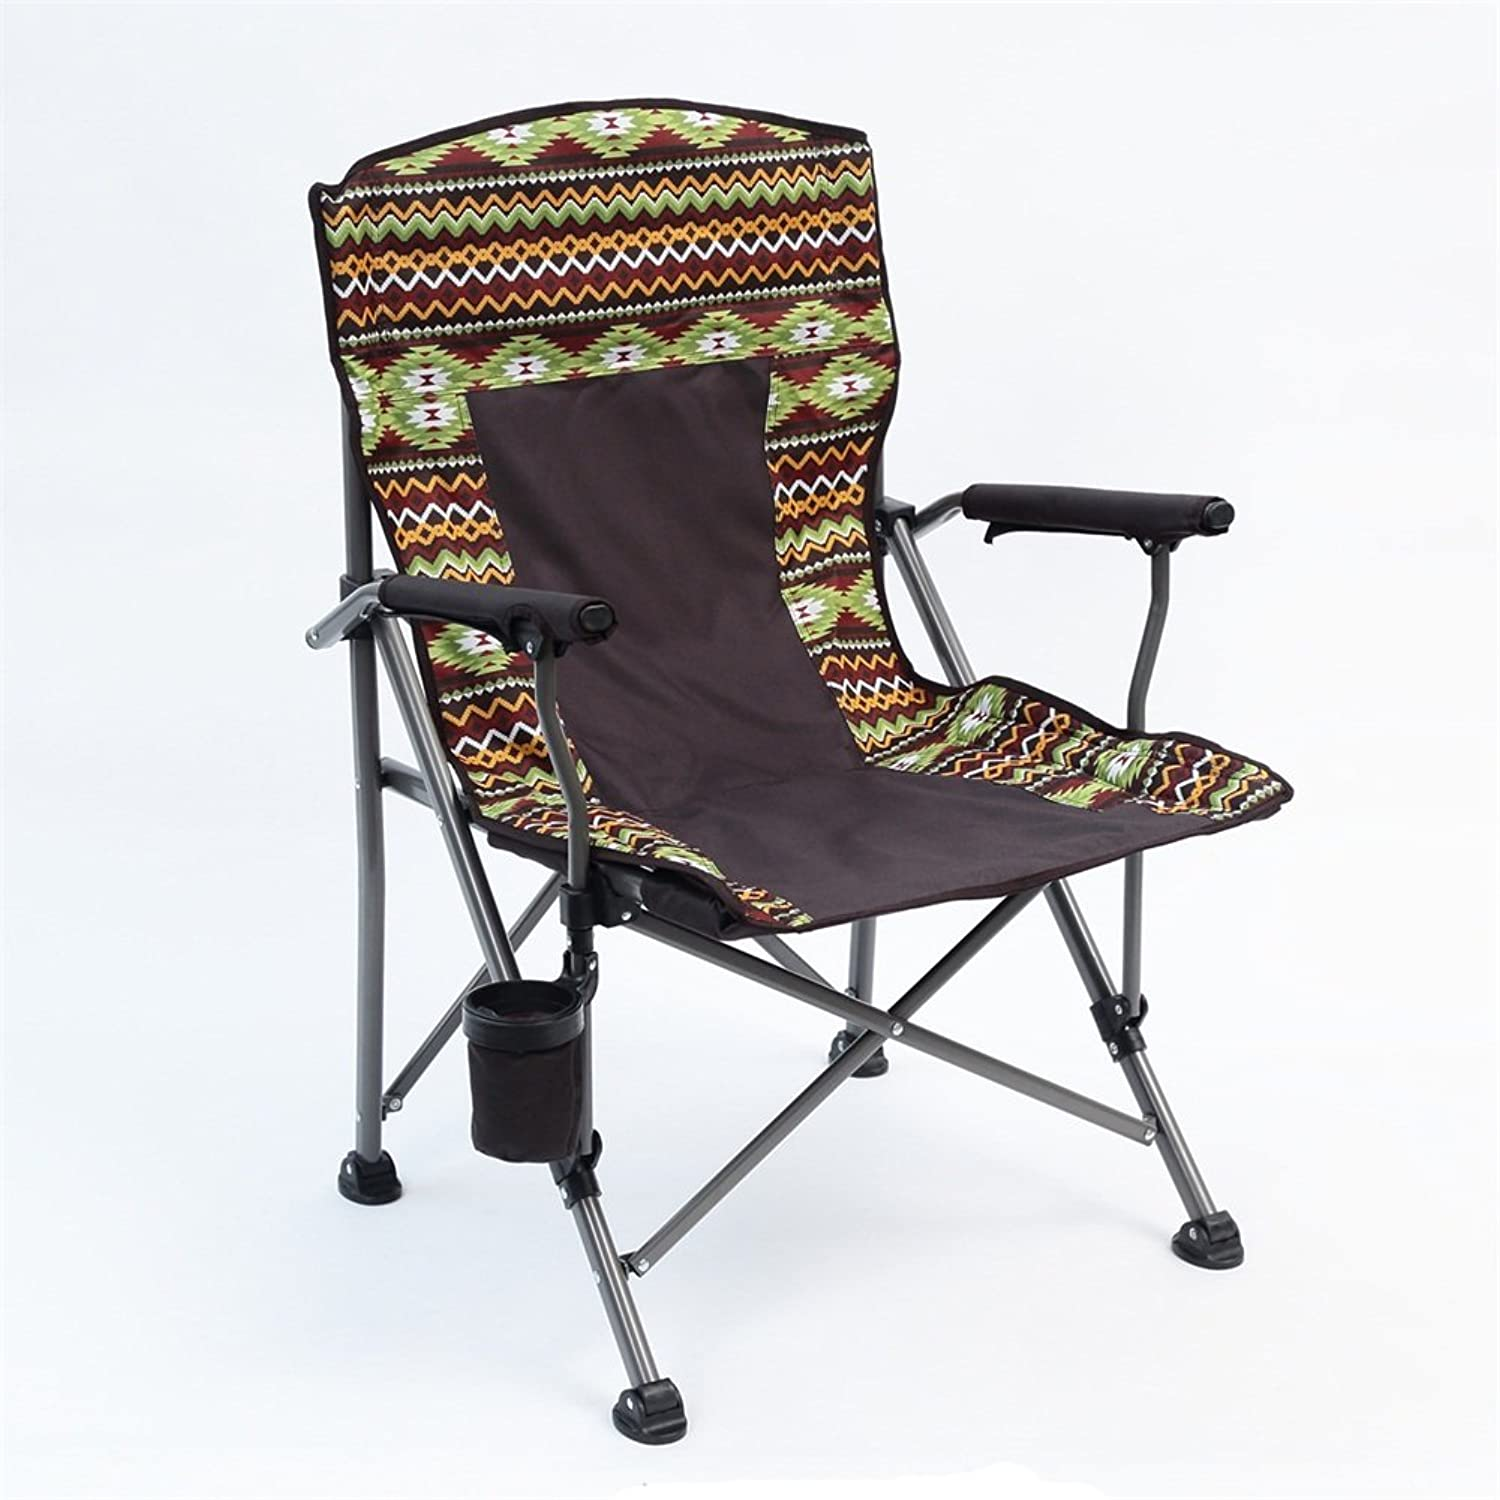 Collapsible Stools with Backrest Folding Seat with Armrest Beach Chair with Armrest Ergonomic Fishing Chair Portable Solid Practical Leisure Creative